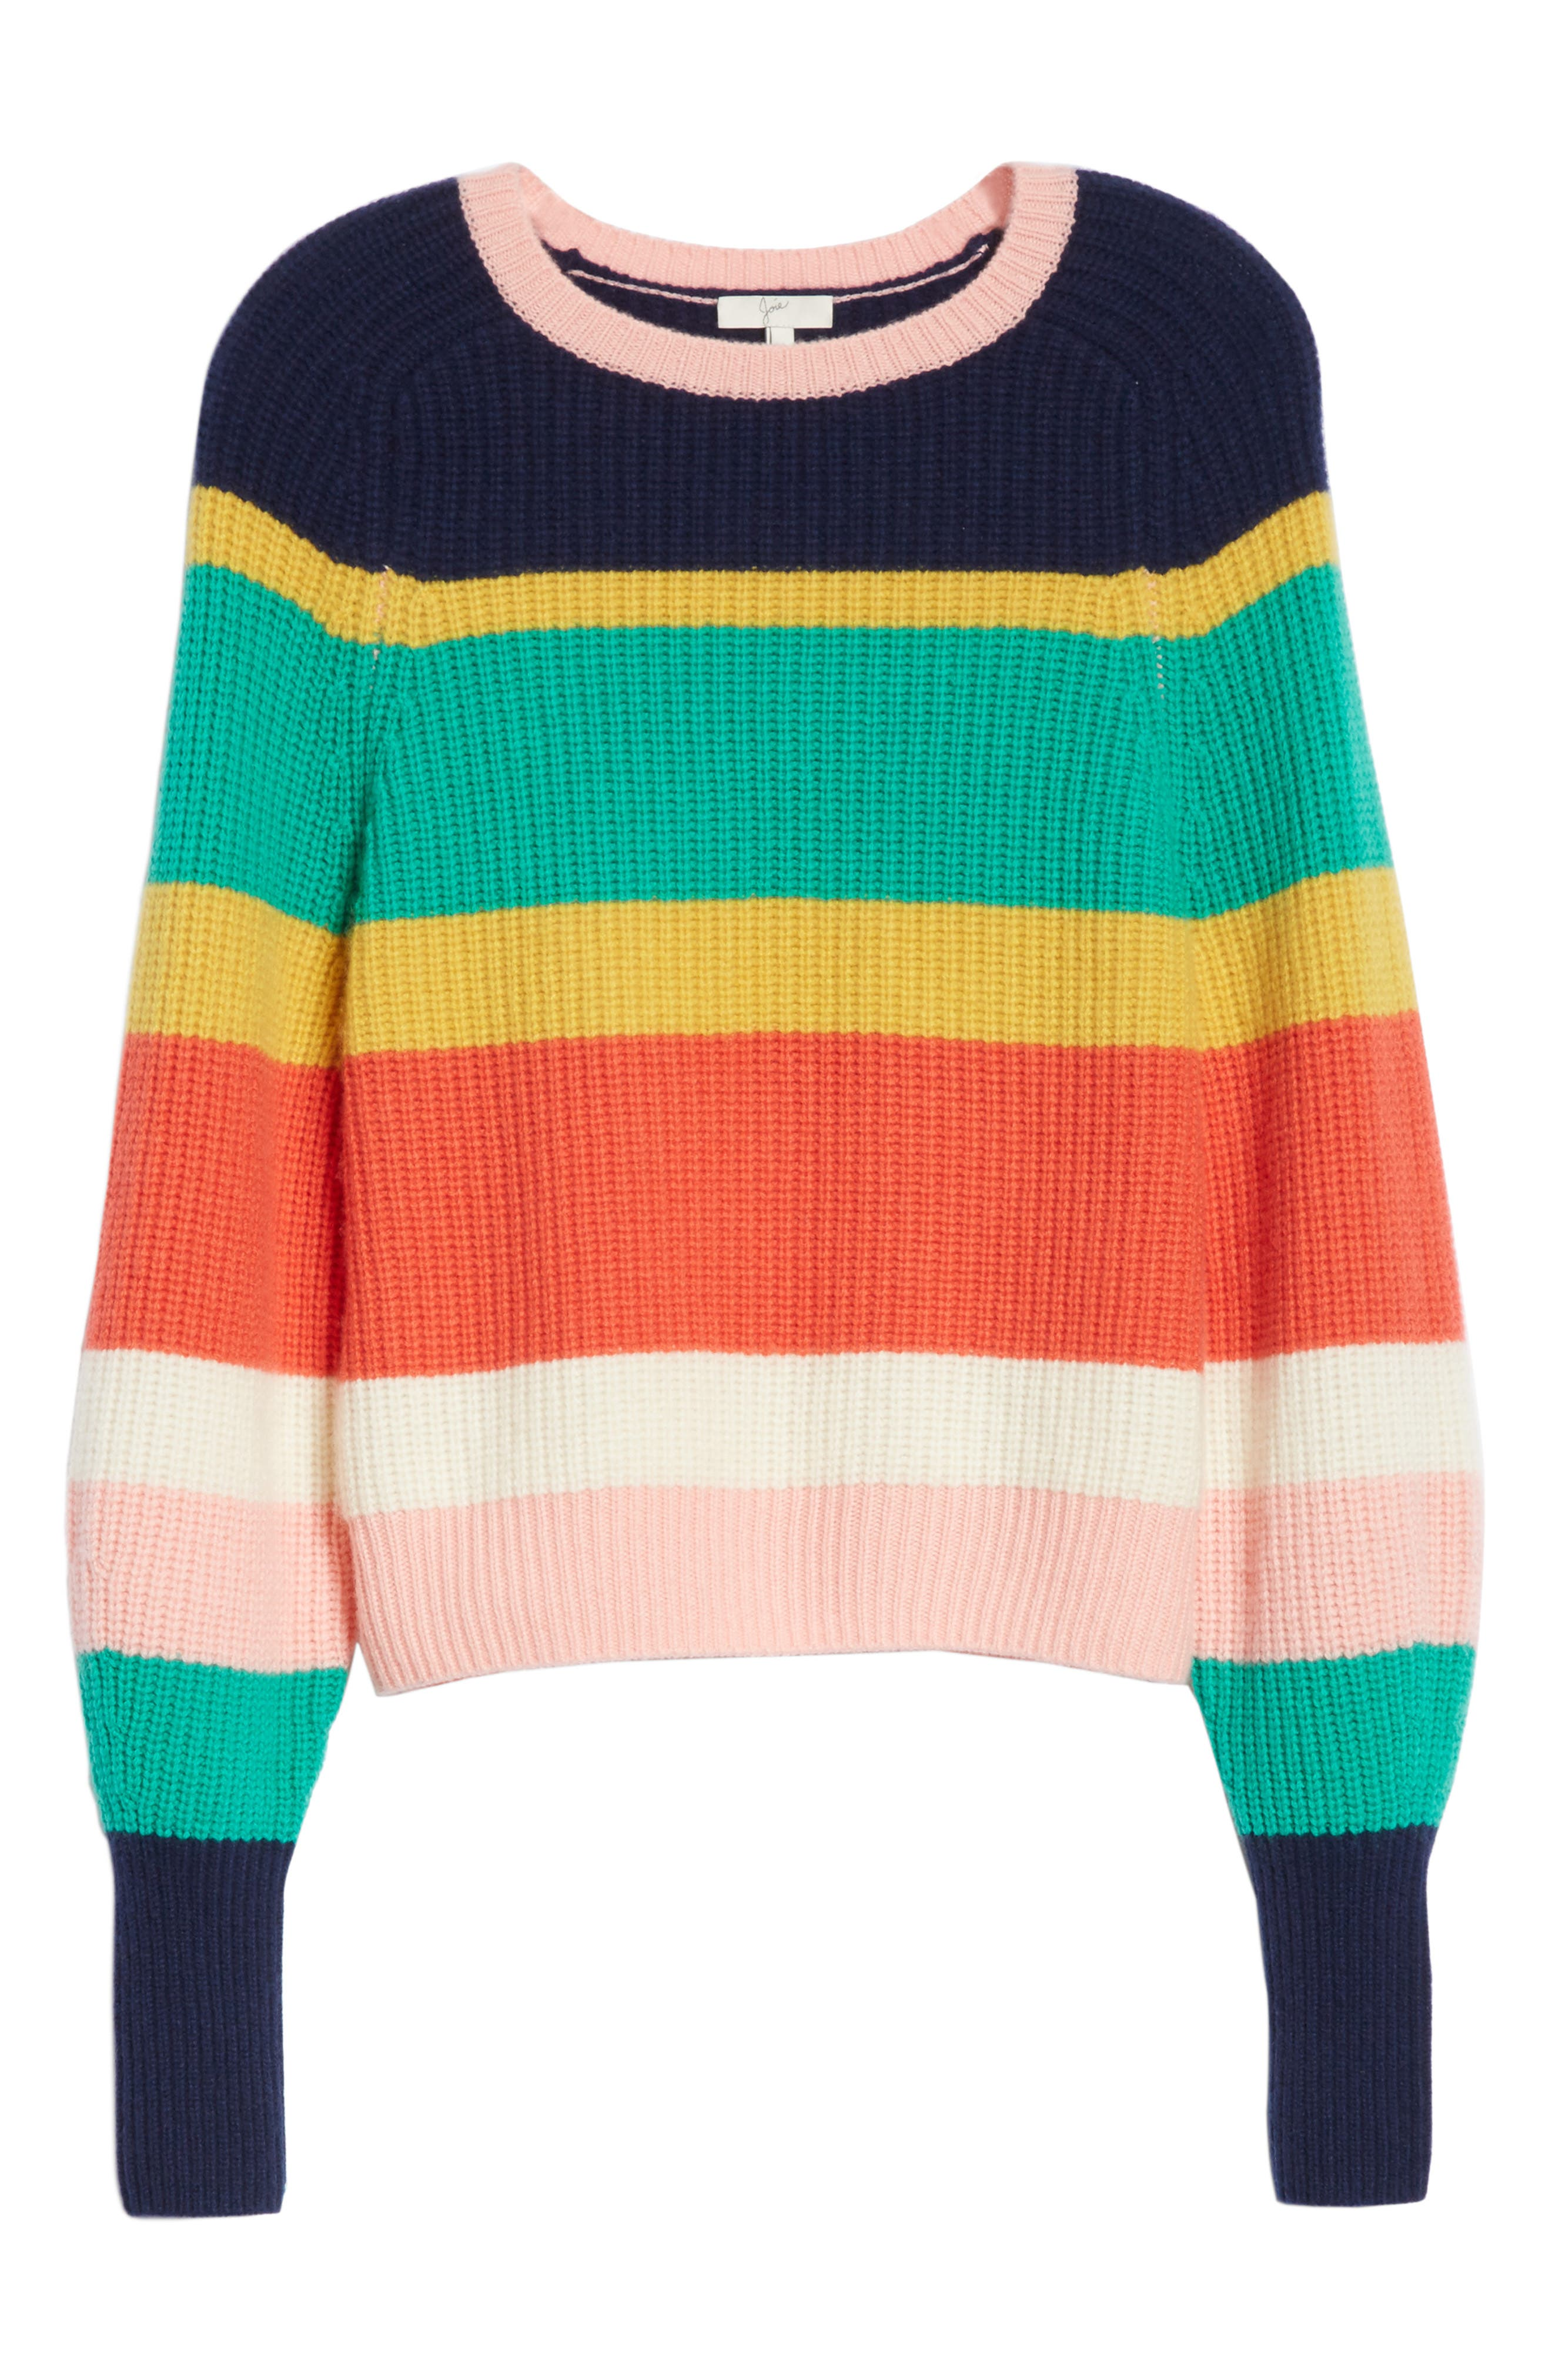 Haady Stripe Wool & Cashmere Sweater,                             Alternate thumbnail 6, color,                             475